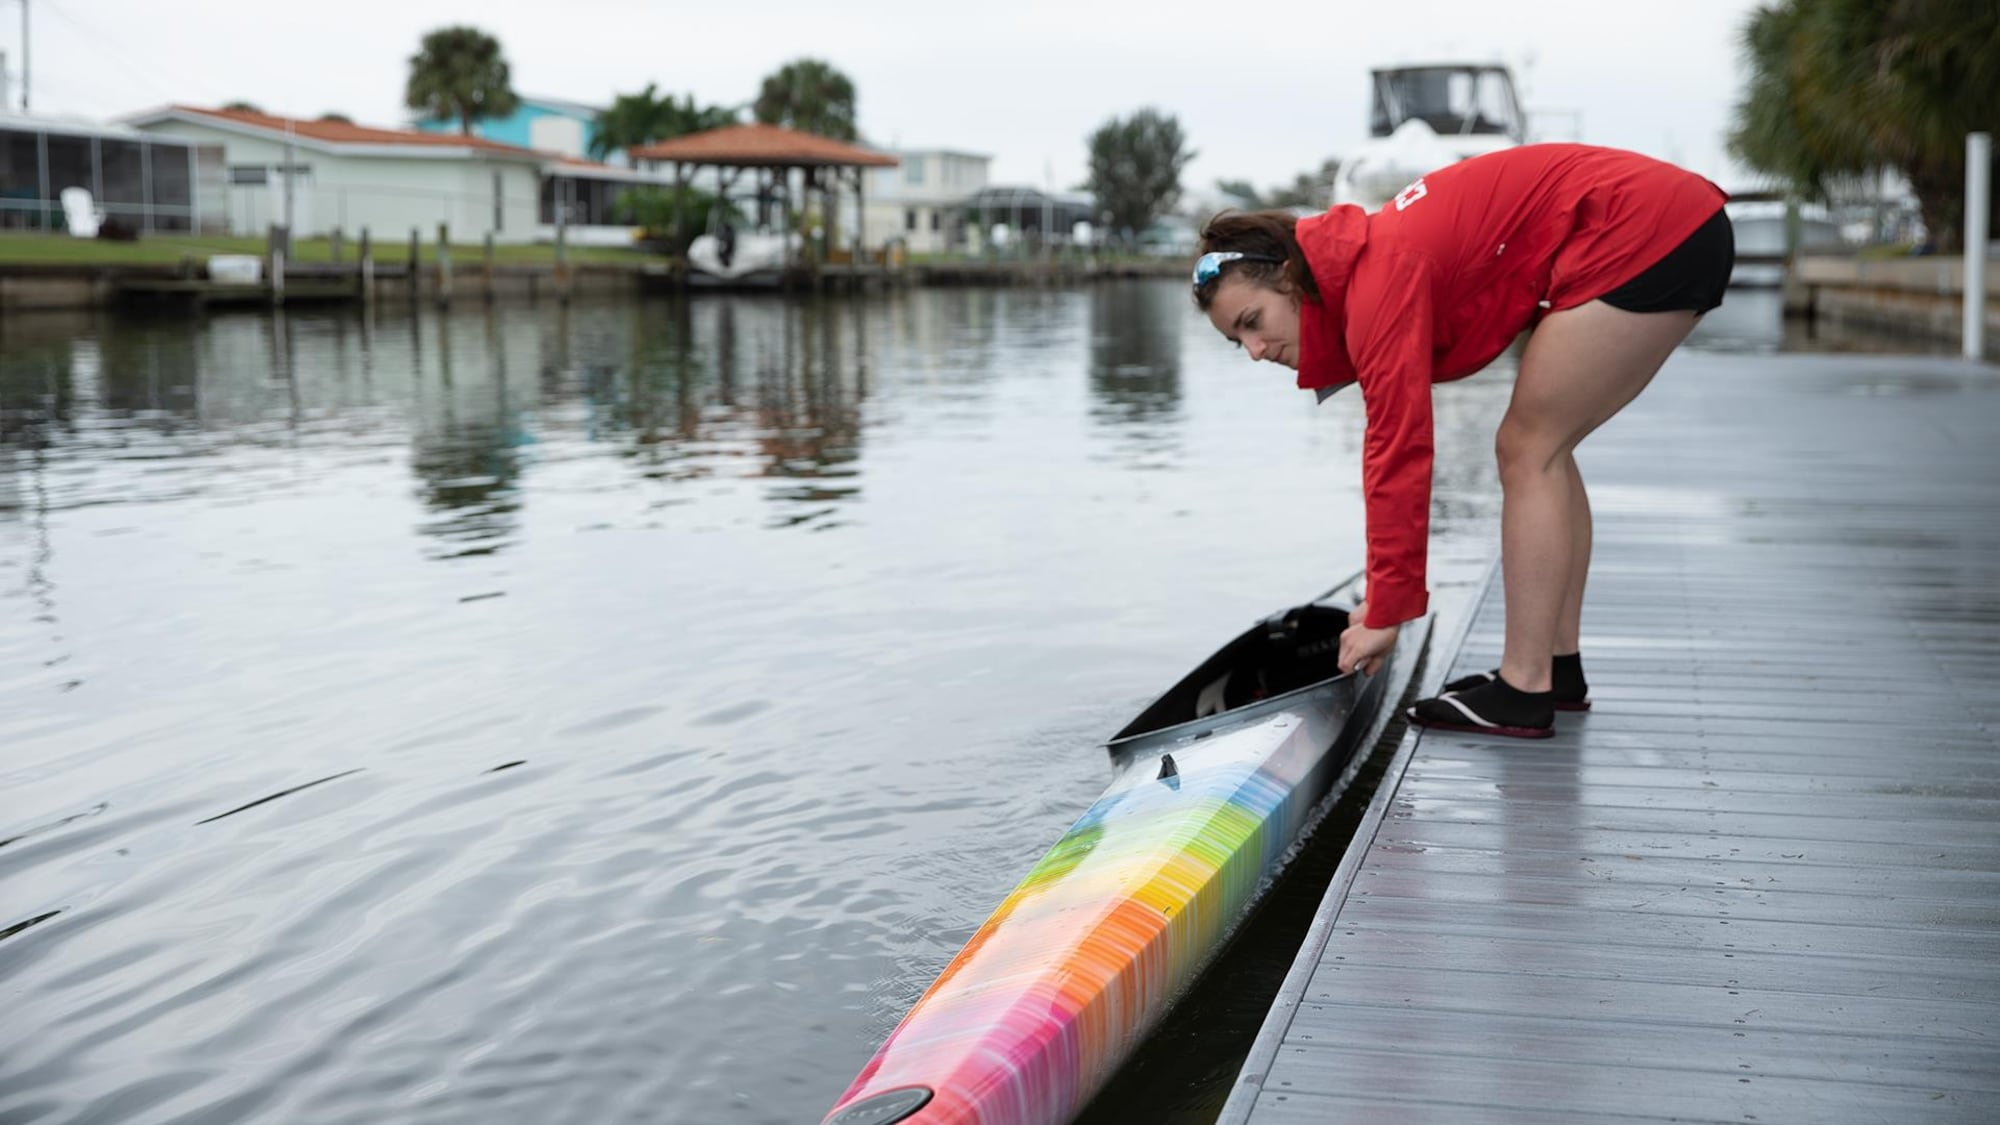 A woman lays her kayak on a body of water next to a pier.